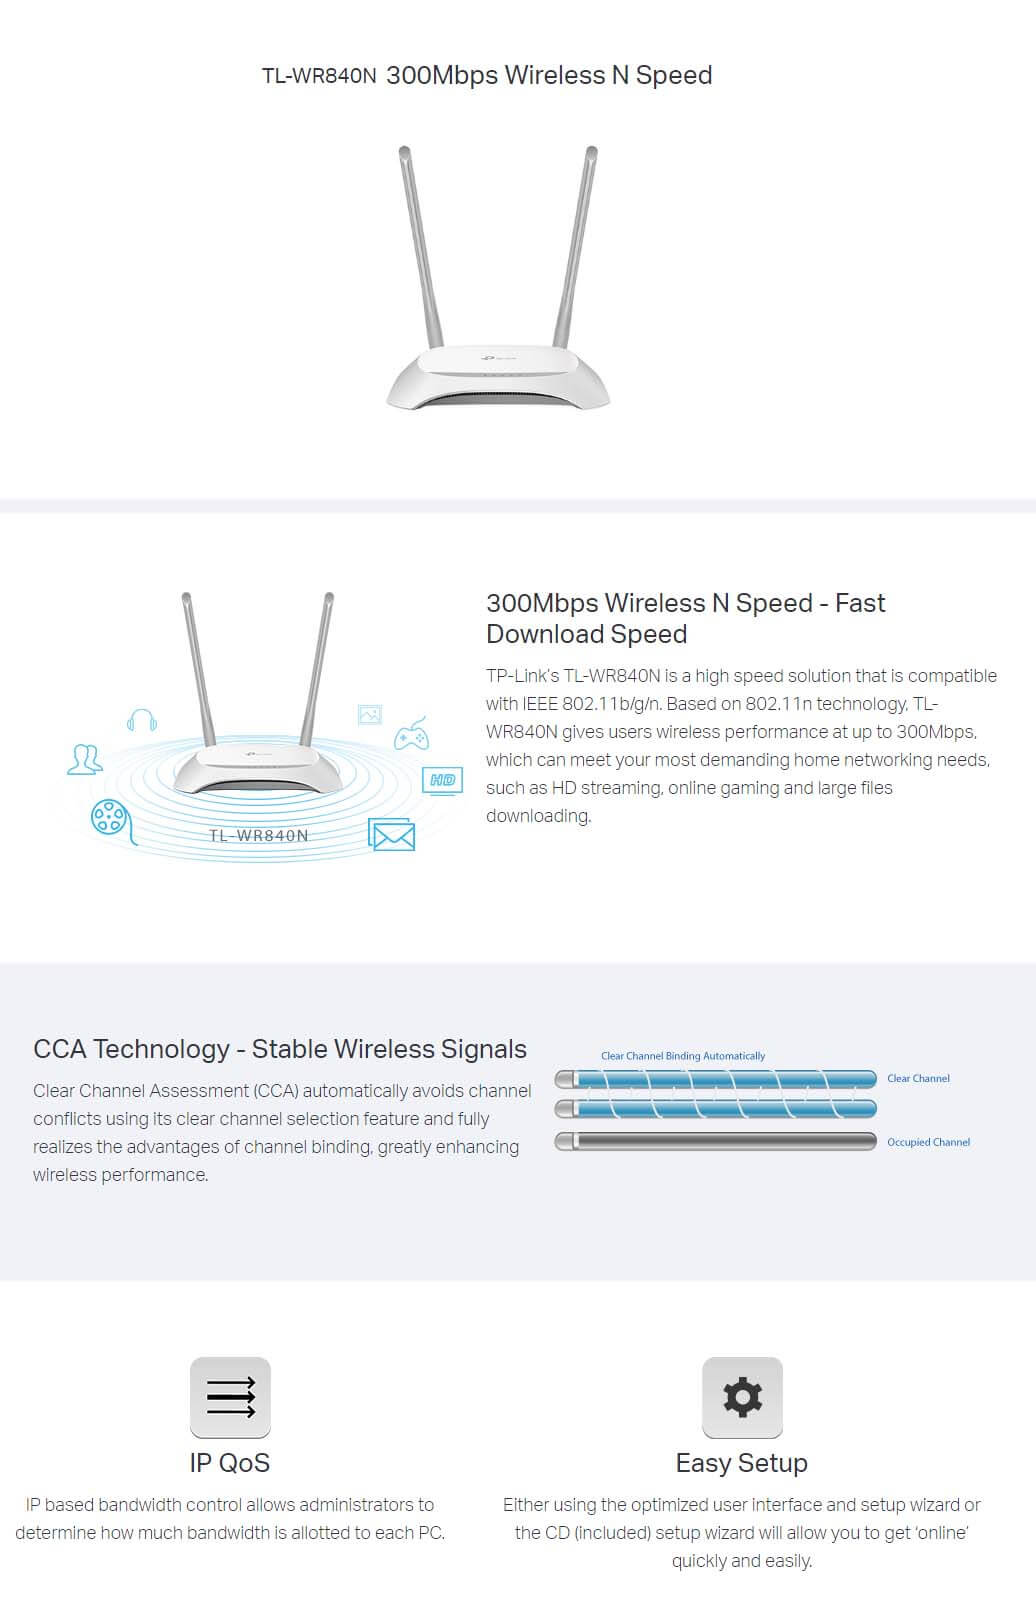 TP-Link TL-WR840N 300Mbps Wireless Router SOP